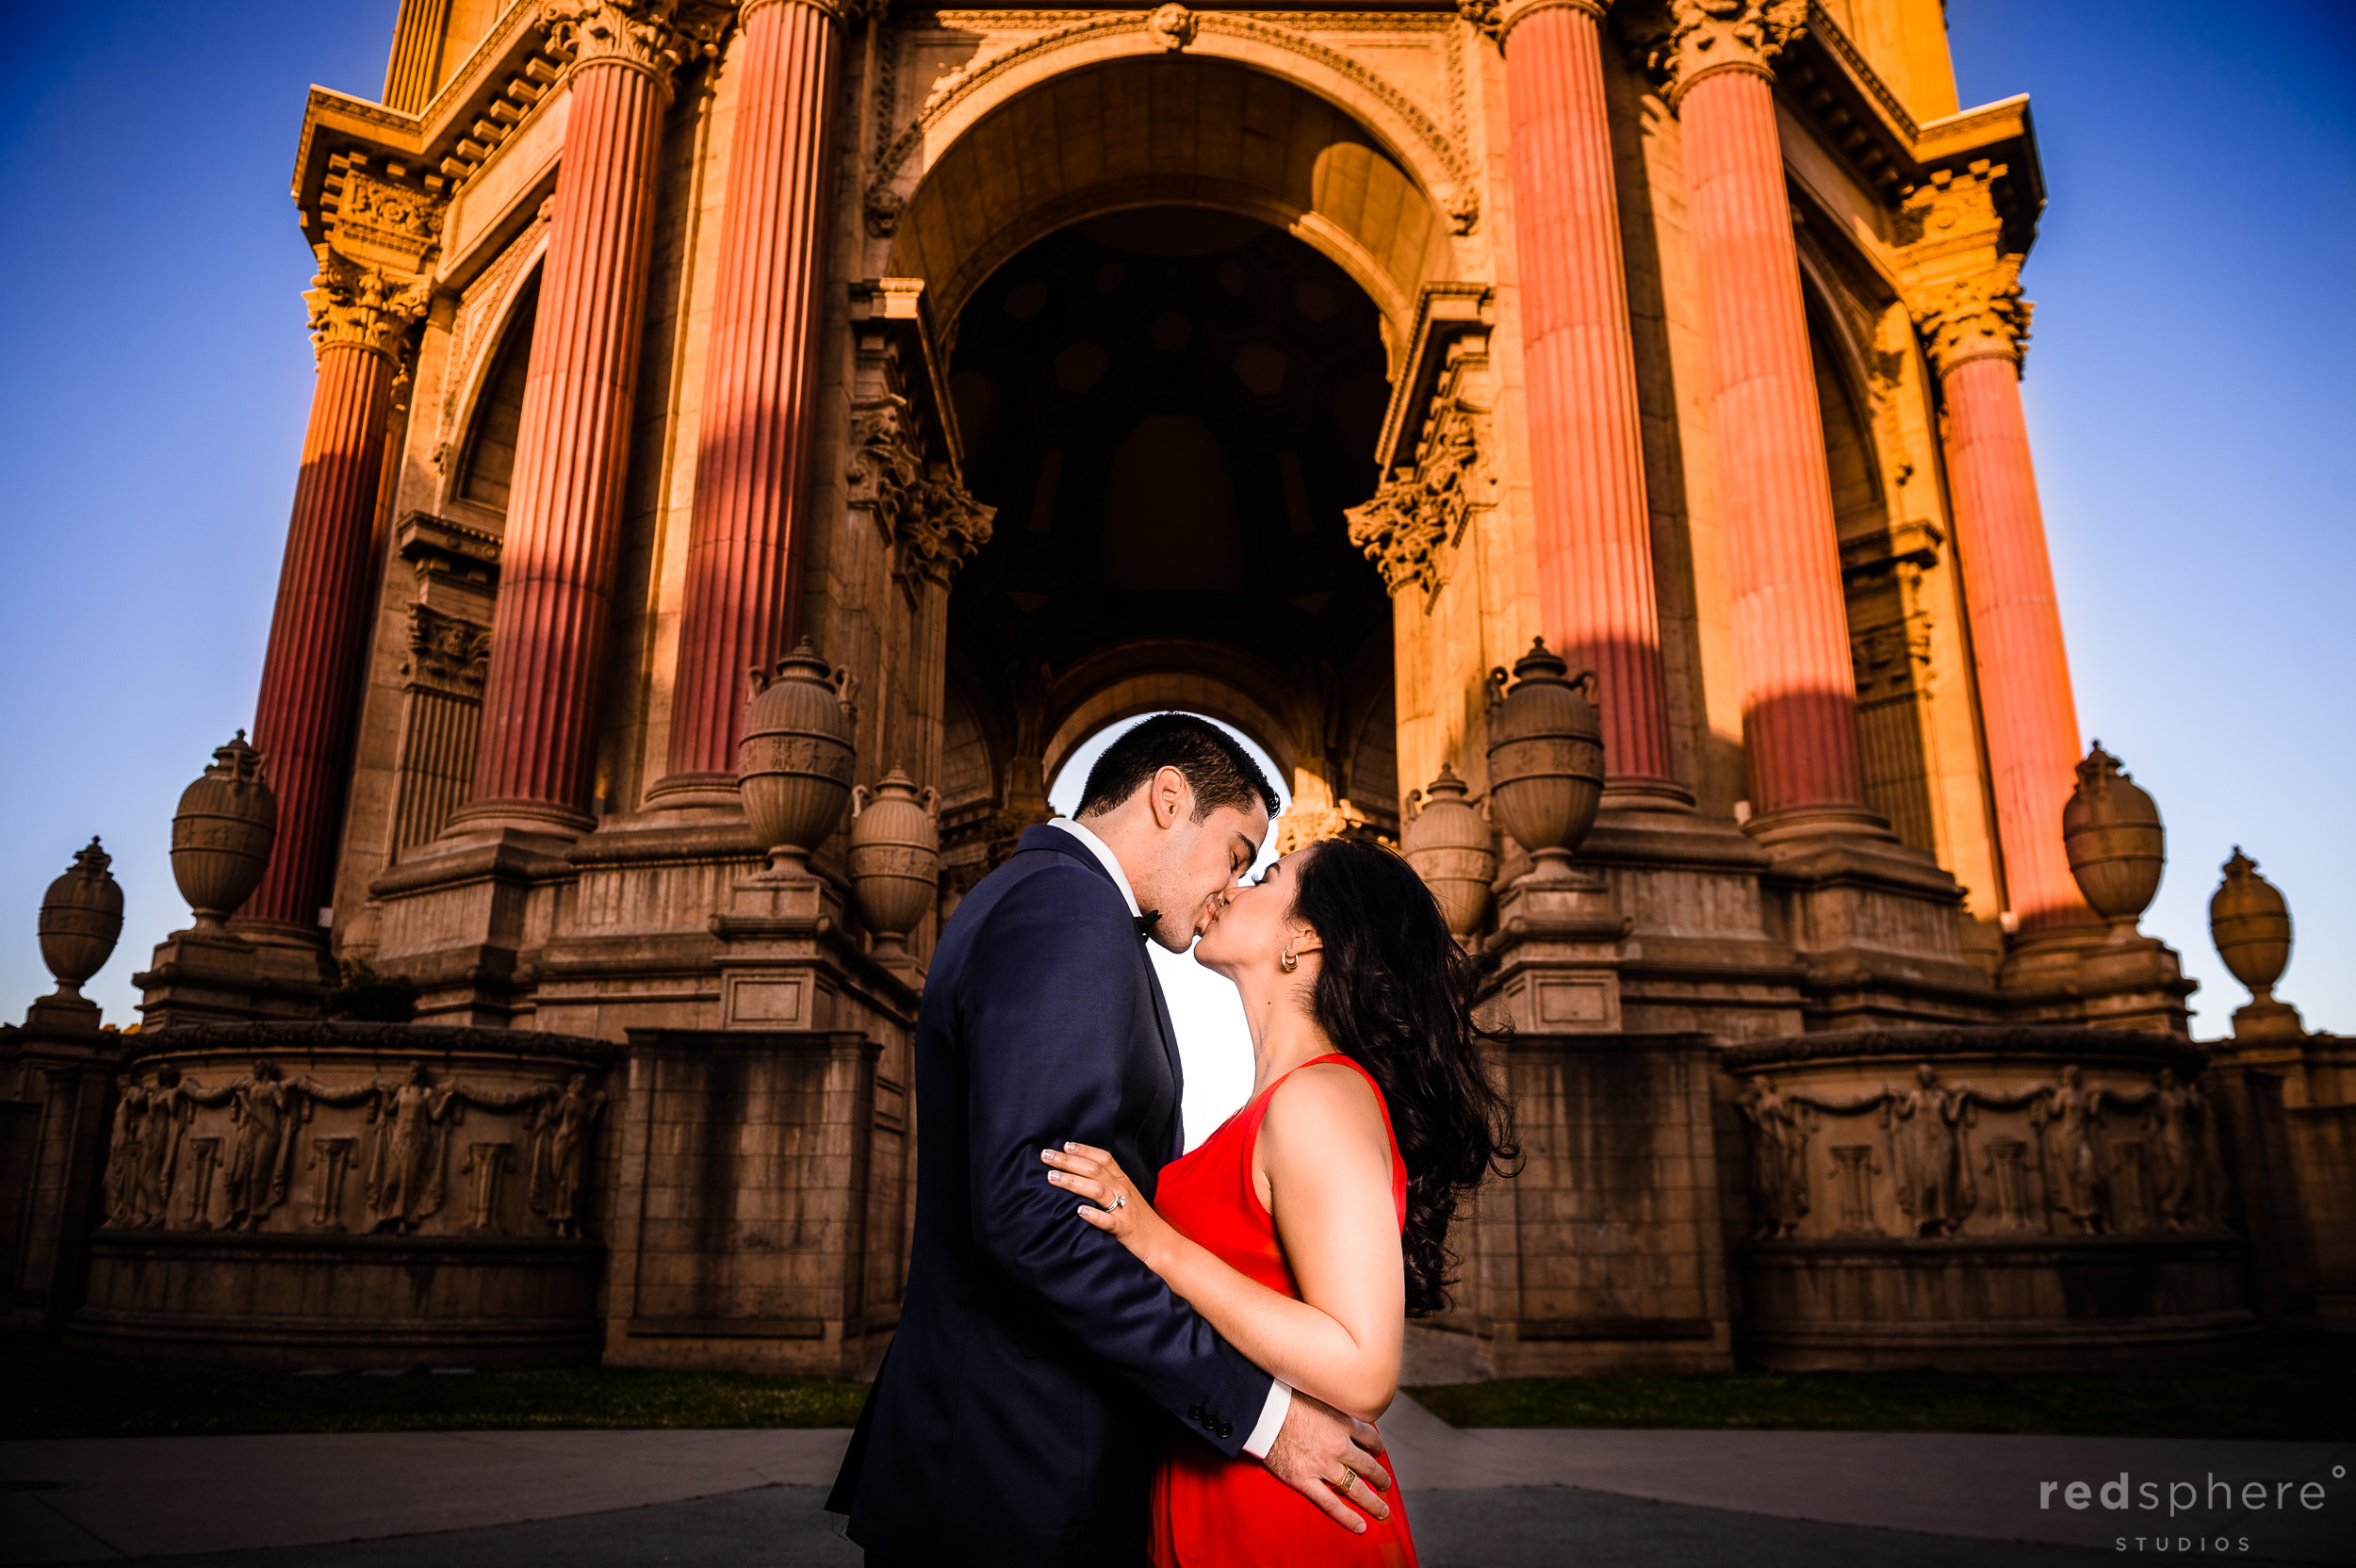 Special Kiss Shared Between Jorge and Daniella at San Francisco Palace of Fine Arts Engagement